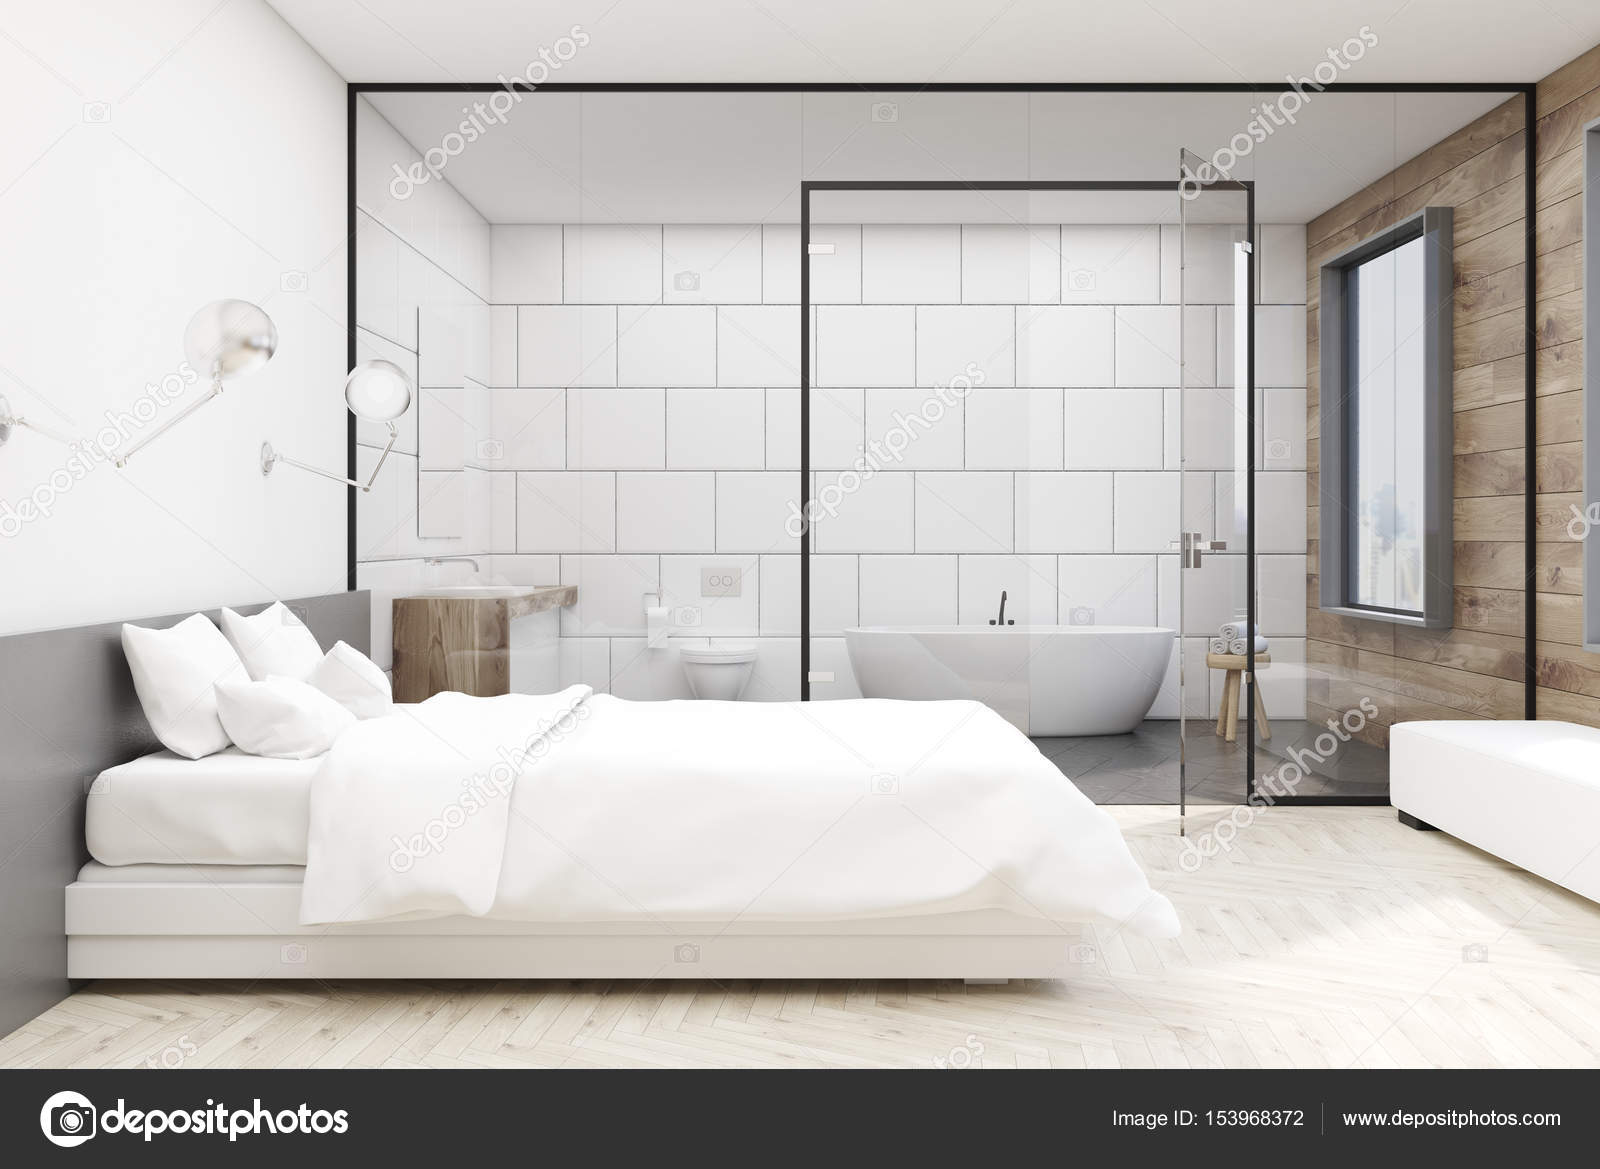 https://st3.depositphotos.com/2673929/15396/i/1600/depositphotos_153968372-stock-photo-bedroom-with-white-bathroom-front.jpg